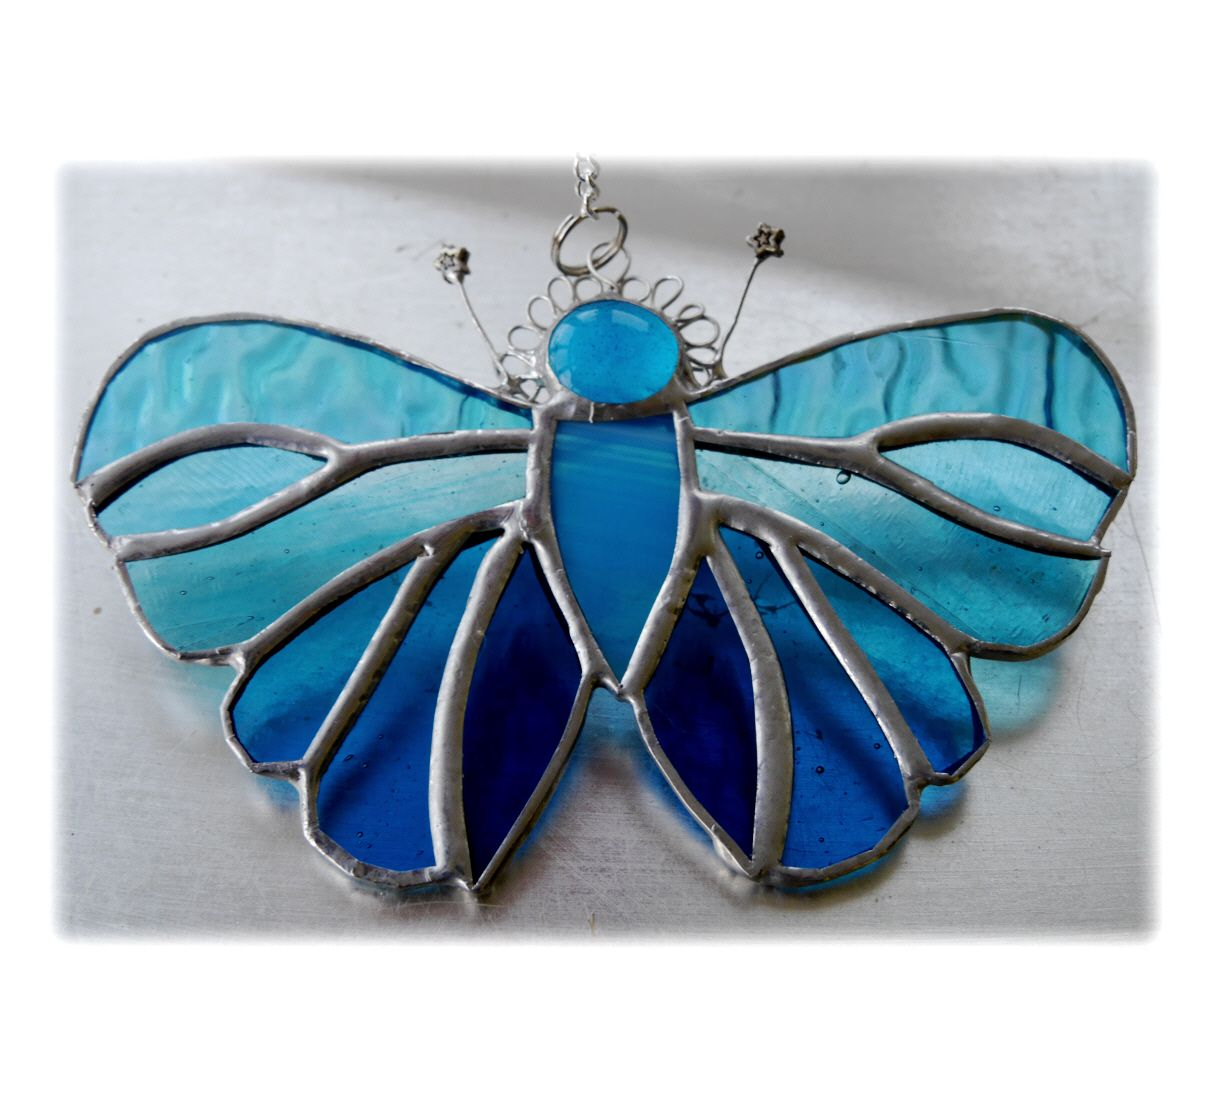 Butterfly Full 093 Turquoise #1906 FREE 14.50